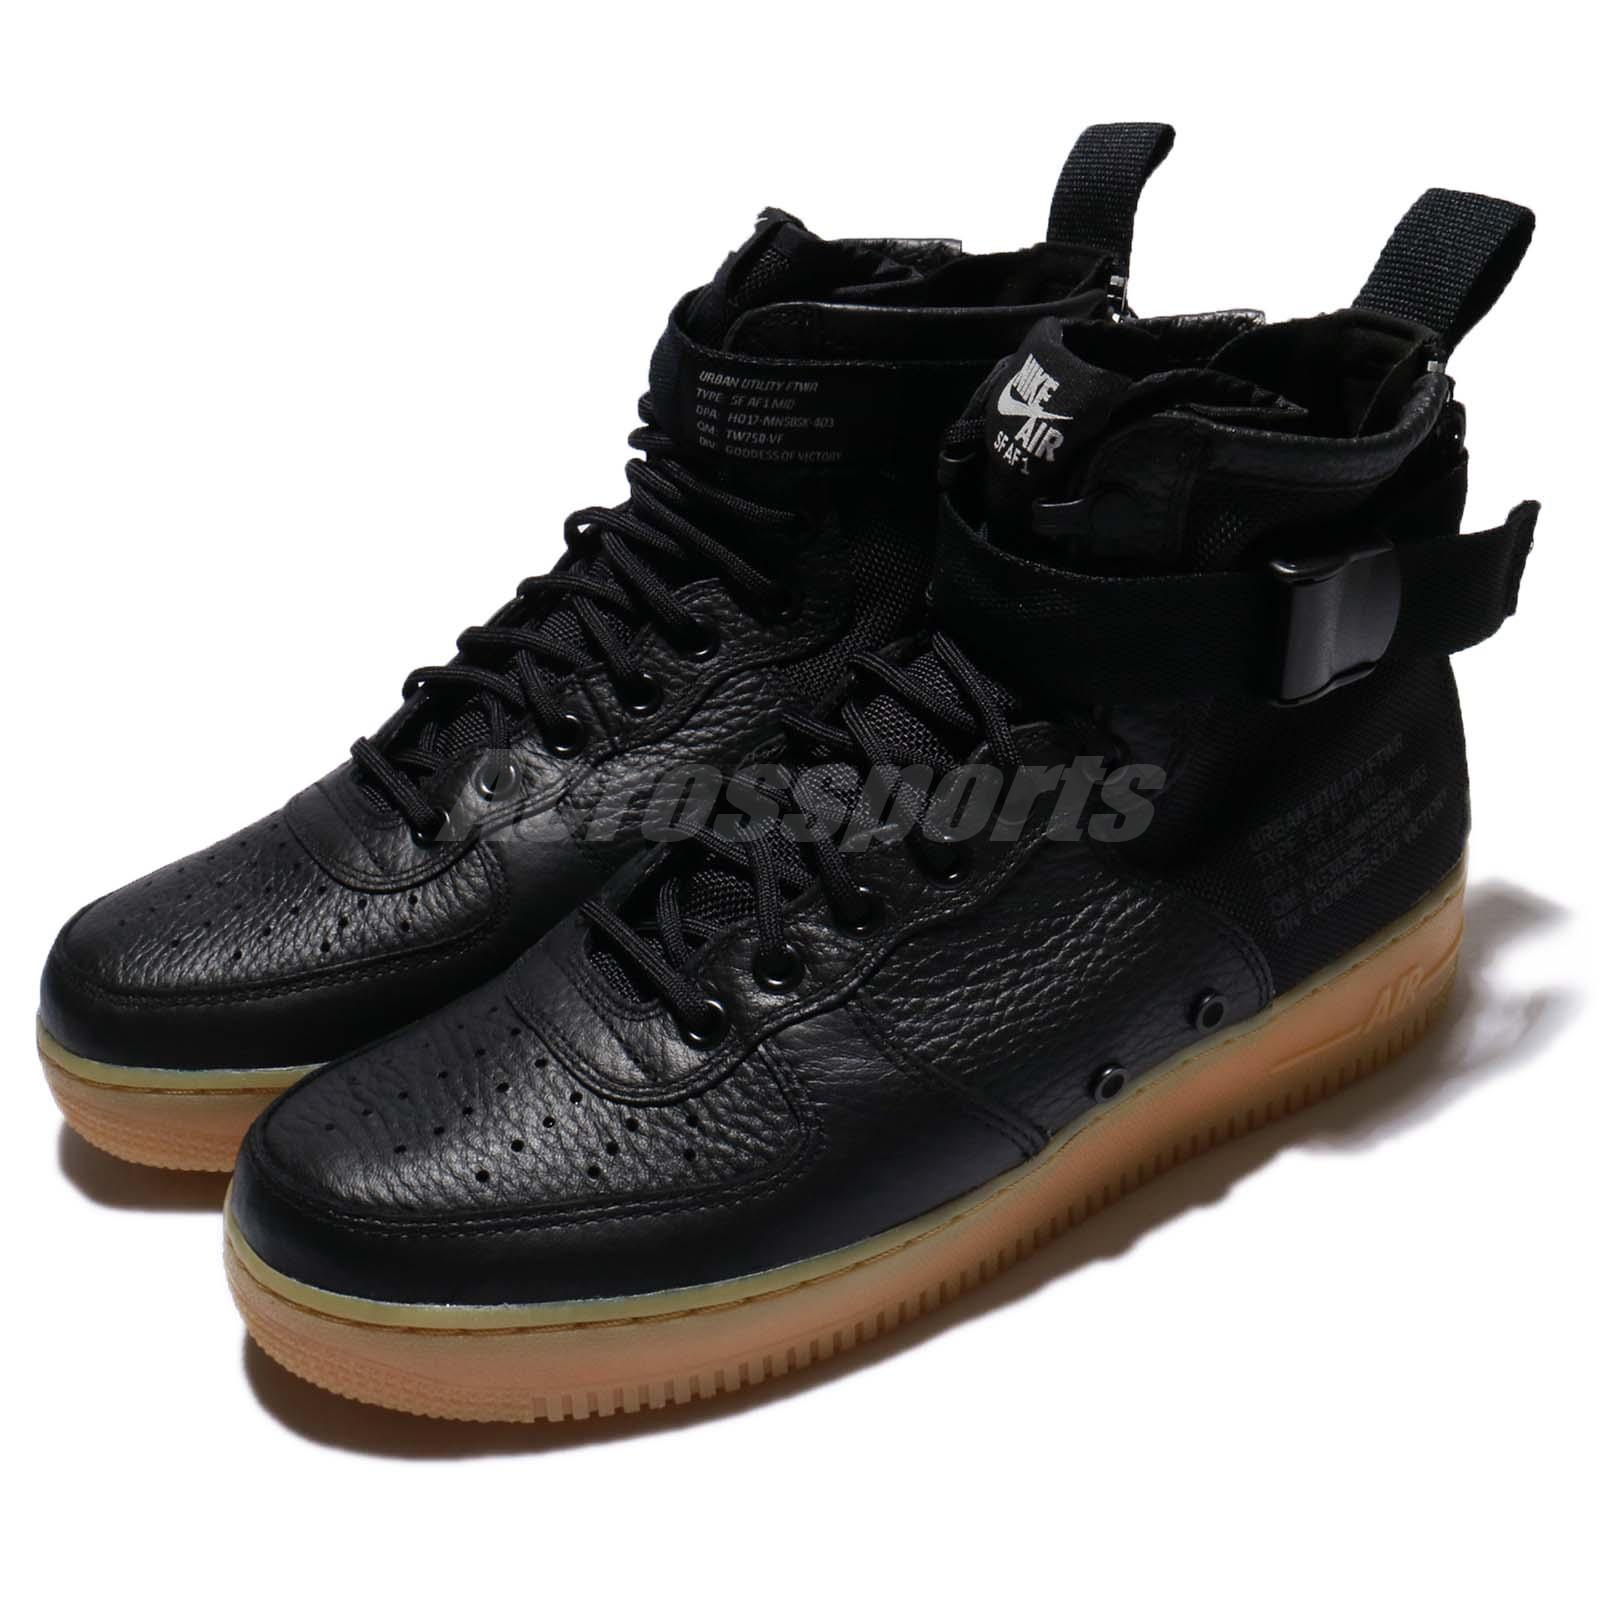 ab5456794b9e Details about Nike SF AF1 Mid Special Field Black Gum Light Brown Men Air  Force 1 917753-003